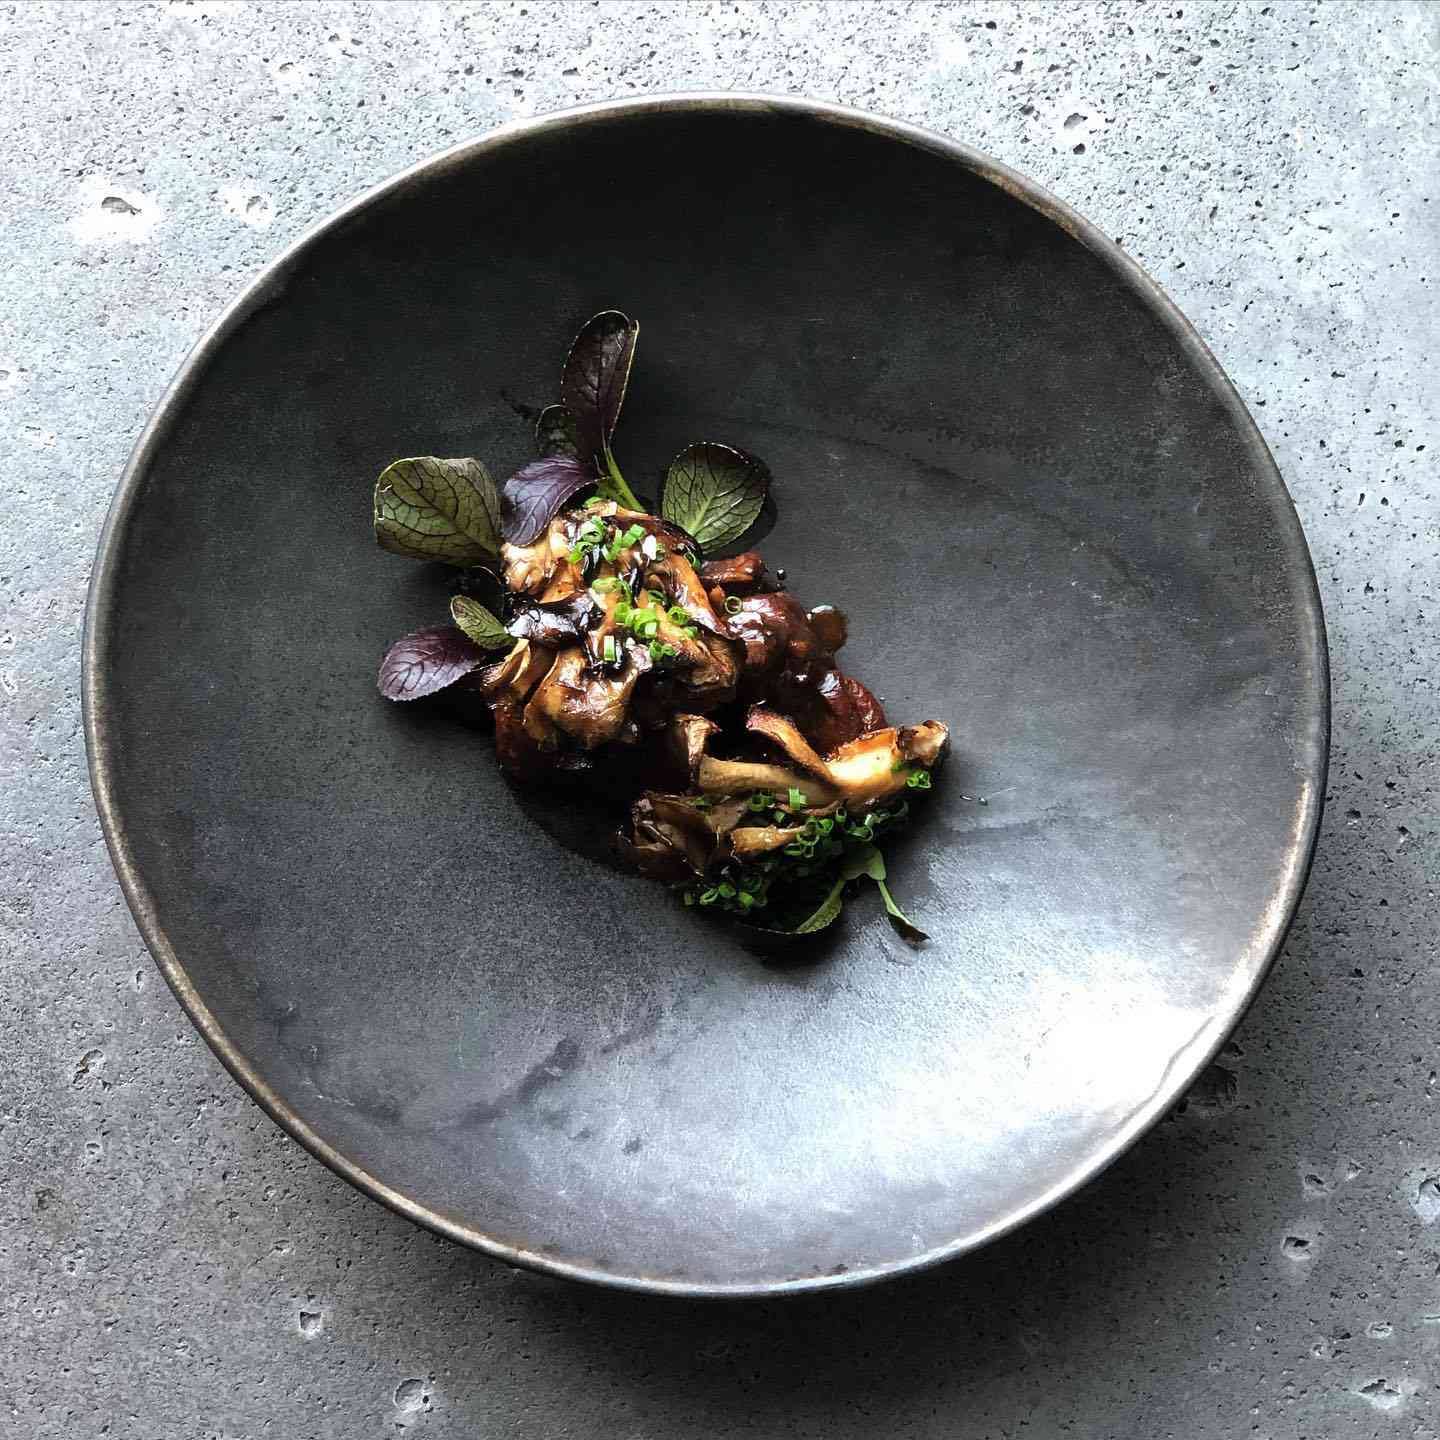 small portion of a mushroom and greens dish on a dark plate